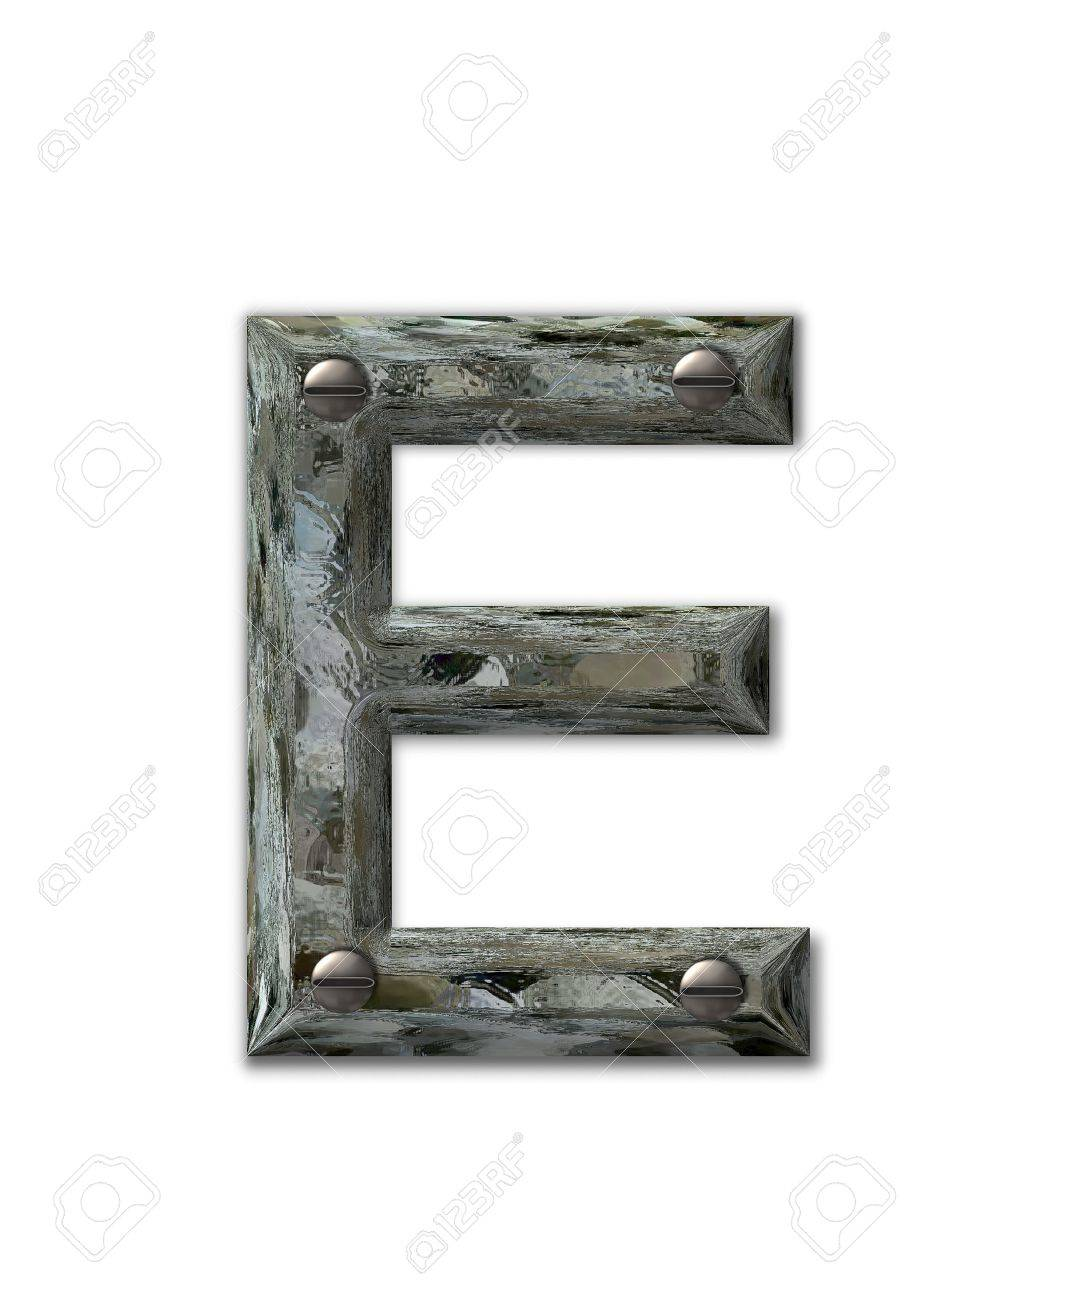 Letter E, in the alphabet set Metal Grunge, is industrial steel fastened with 3d screws.  Letter is dirty and grungy. Stock Photo - 16322433